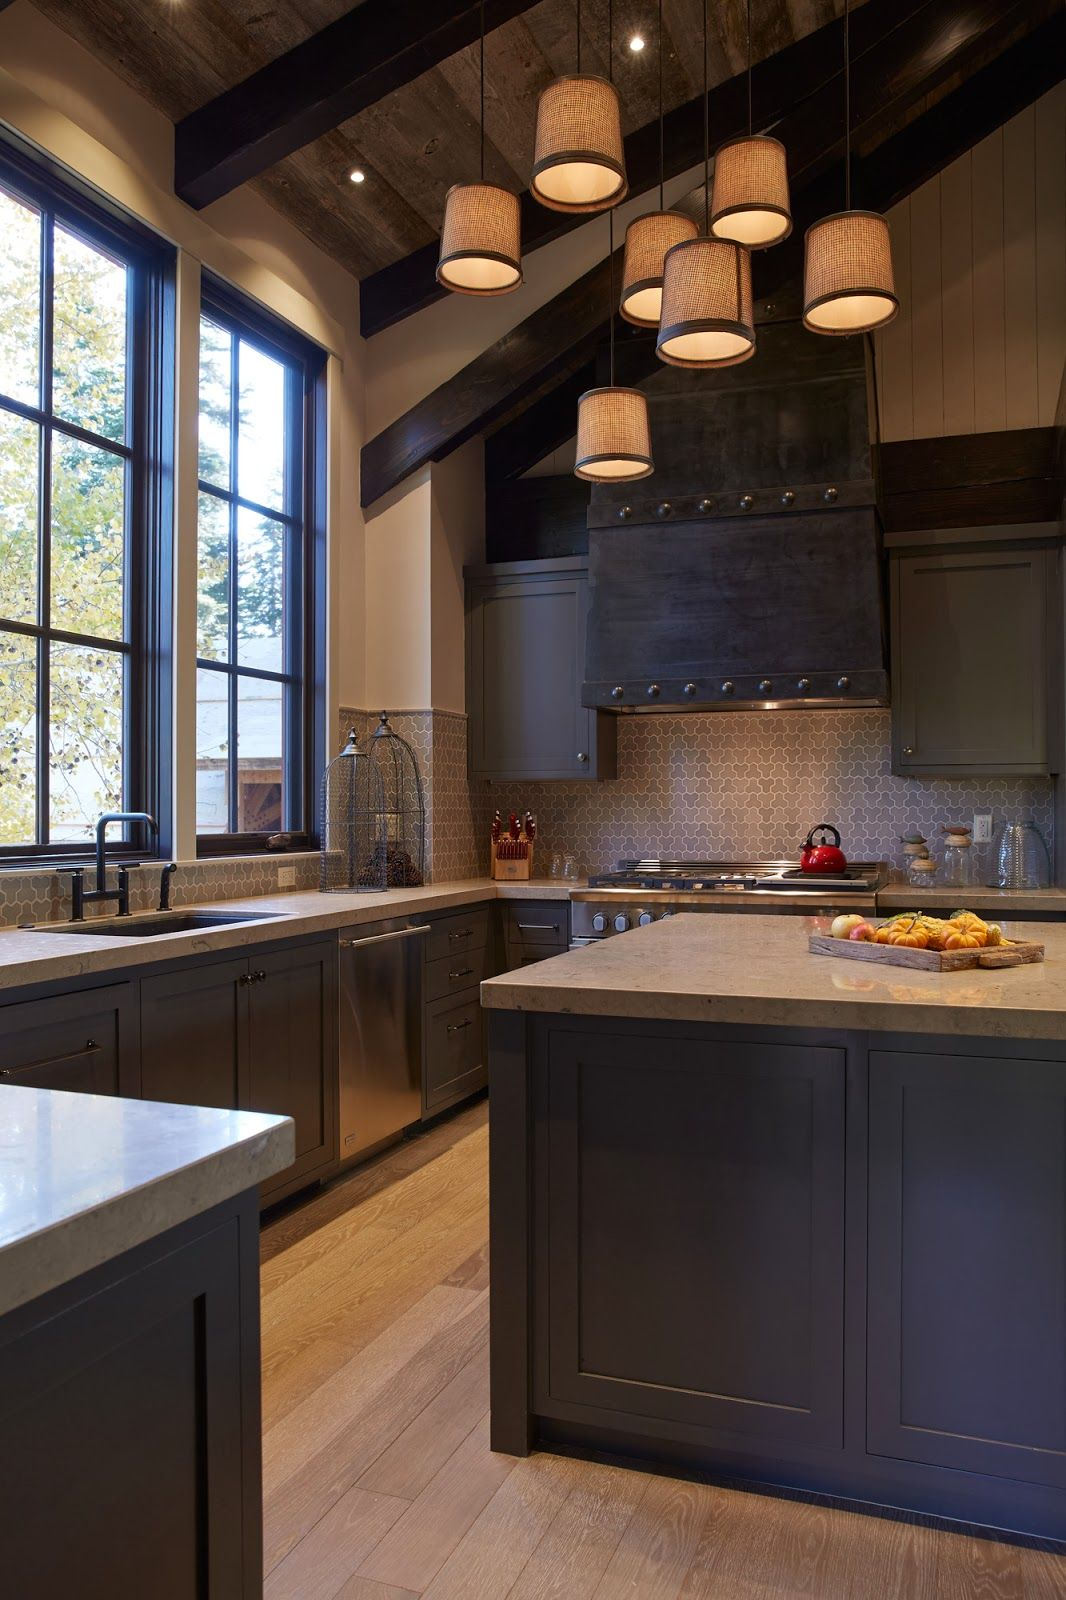 Rustic kitchen Dreamy kitchens Pinterest Home Rustic kitchen